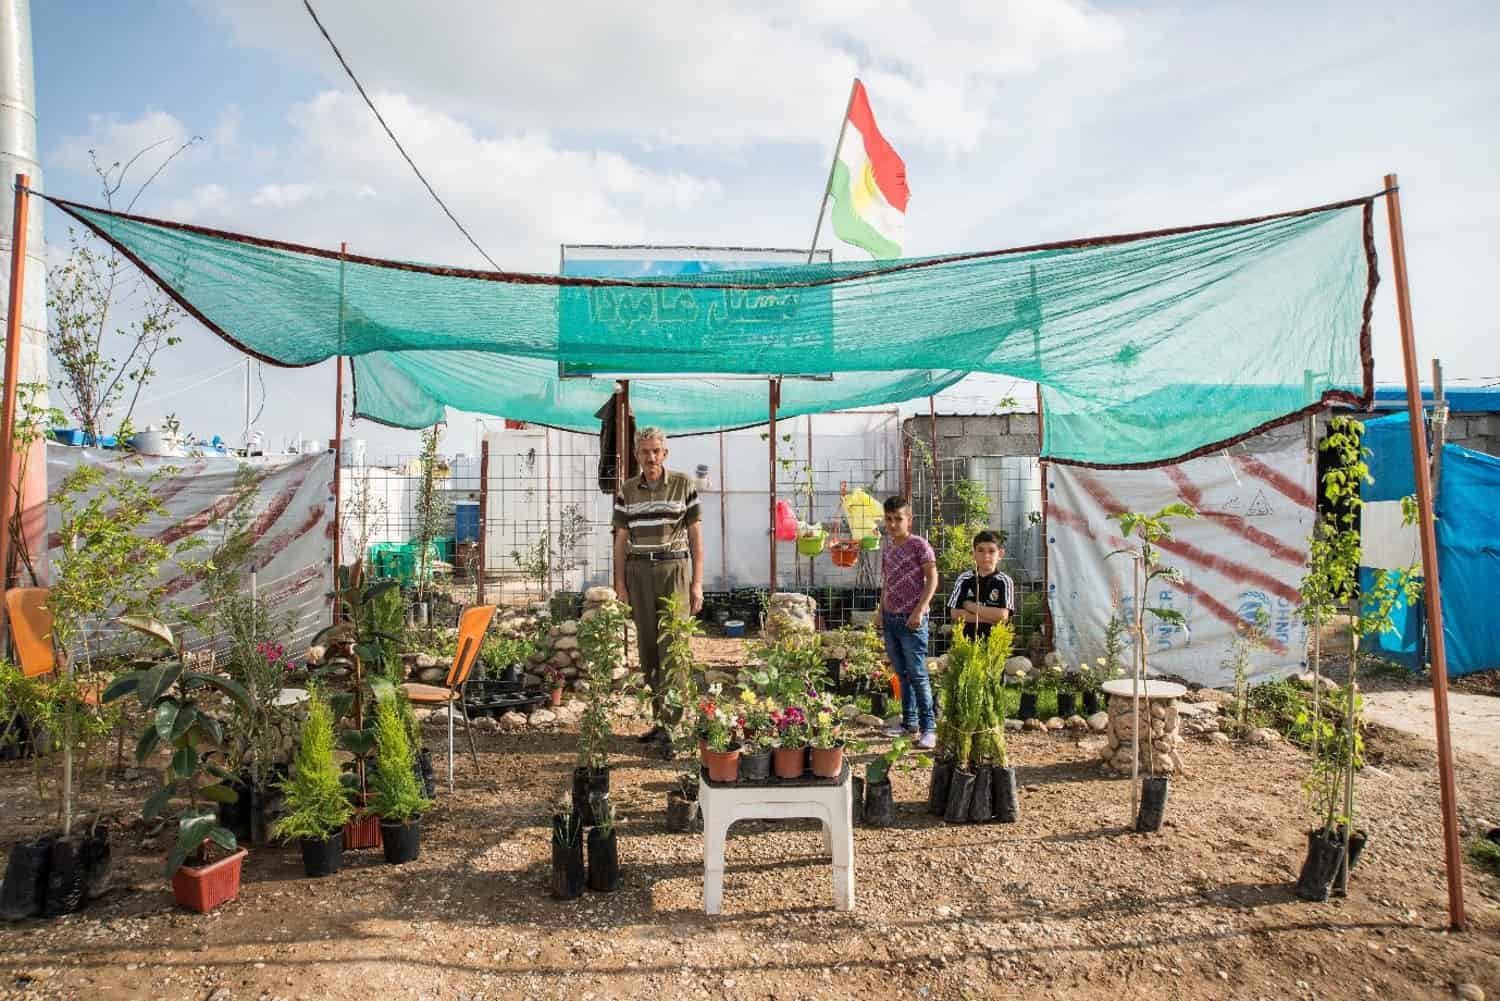 Greening innovation for sovereignty, empowerment, and dignity in Iraqi refugee camps.